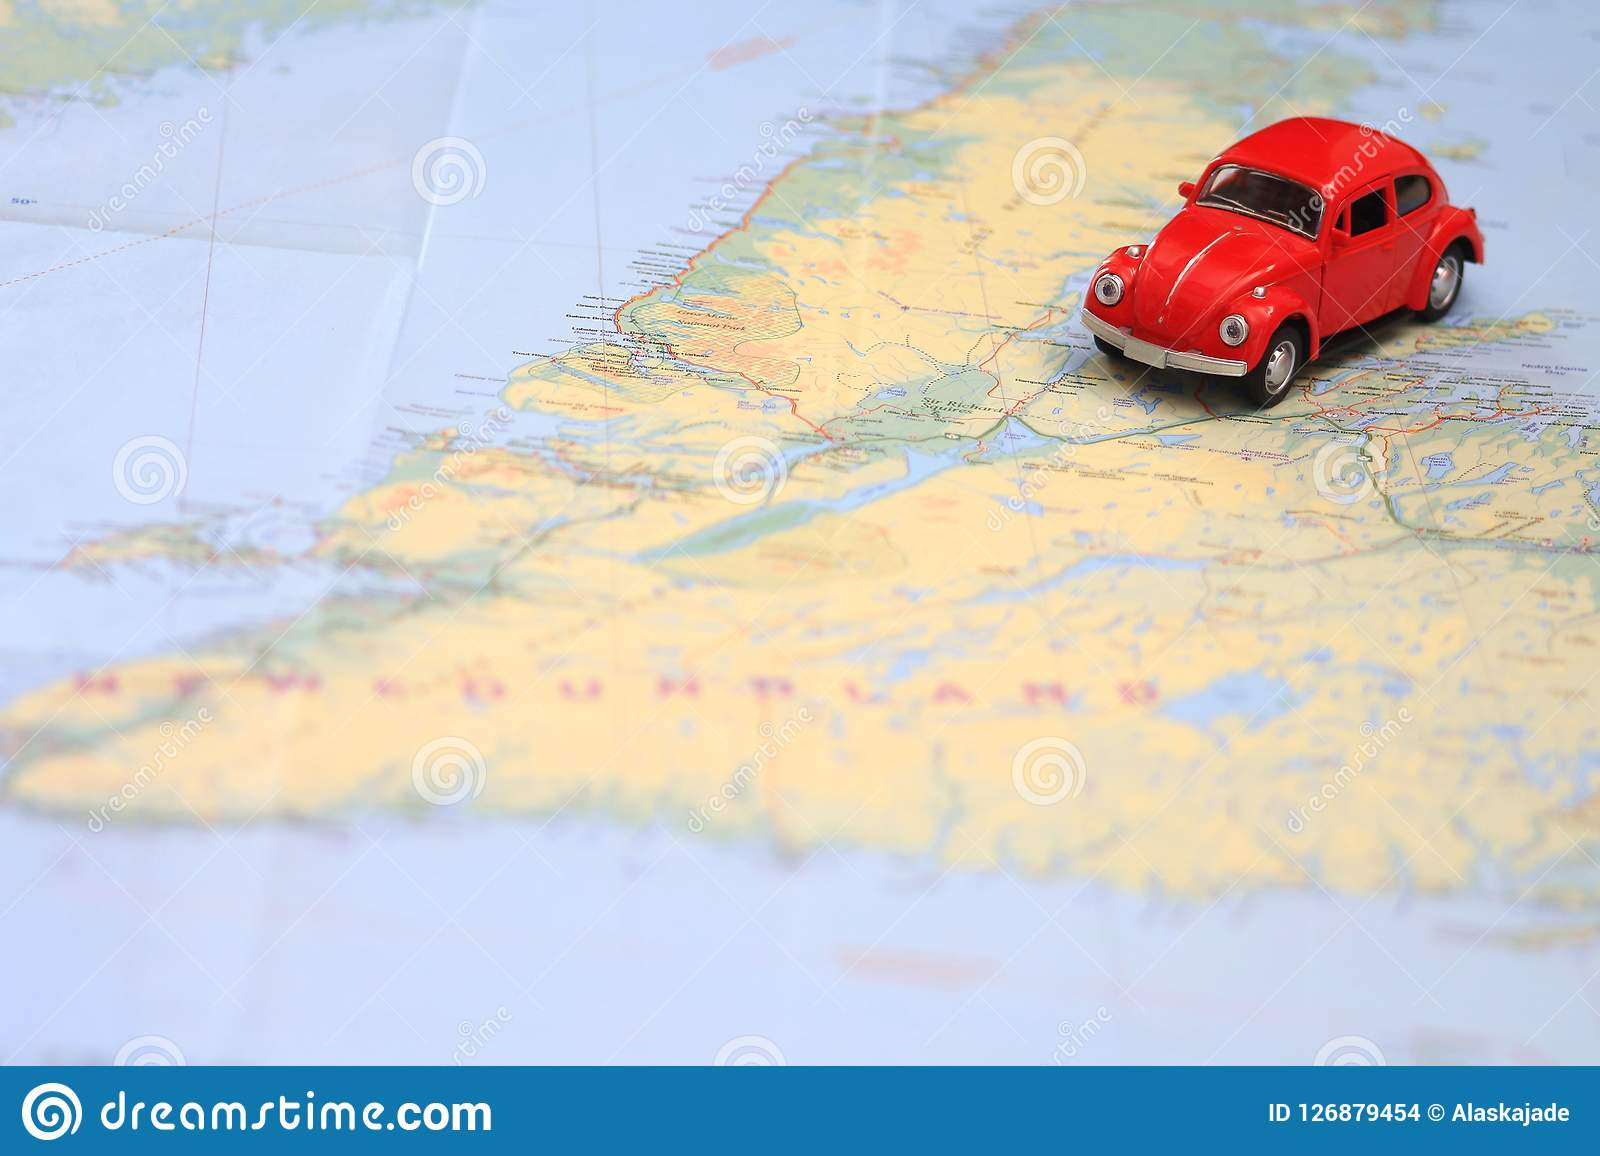 Map Of Canada Driving.Miniature Car Driving On A Map Of Newfoundland Canada Stock